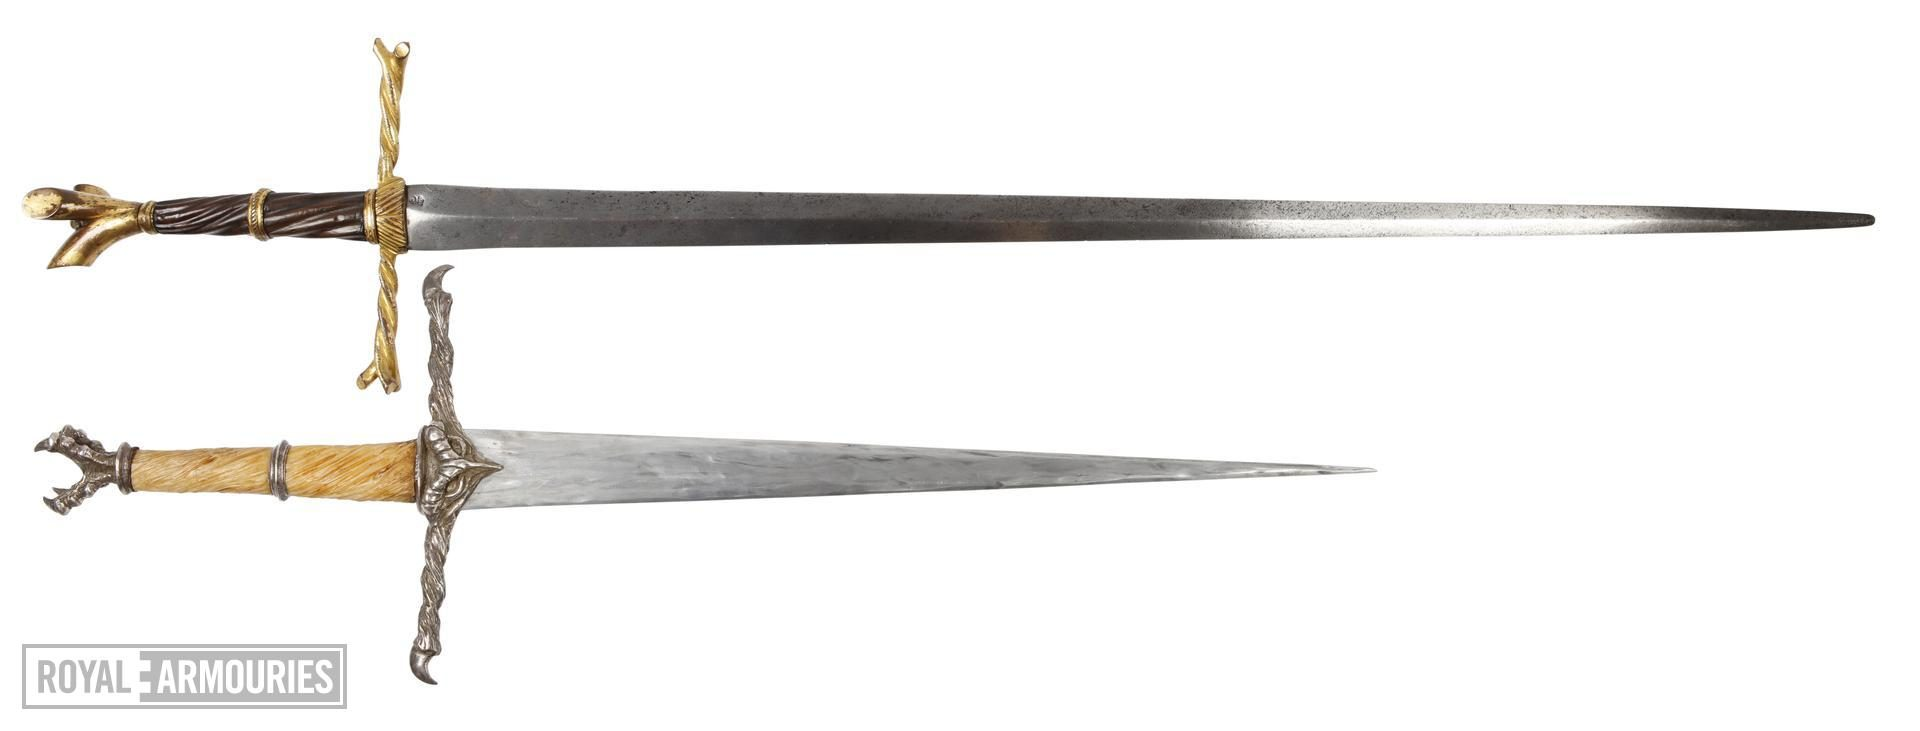 comparison of writehn hilted sword and sword from film